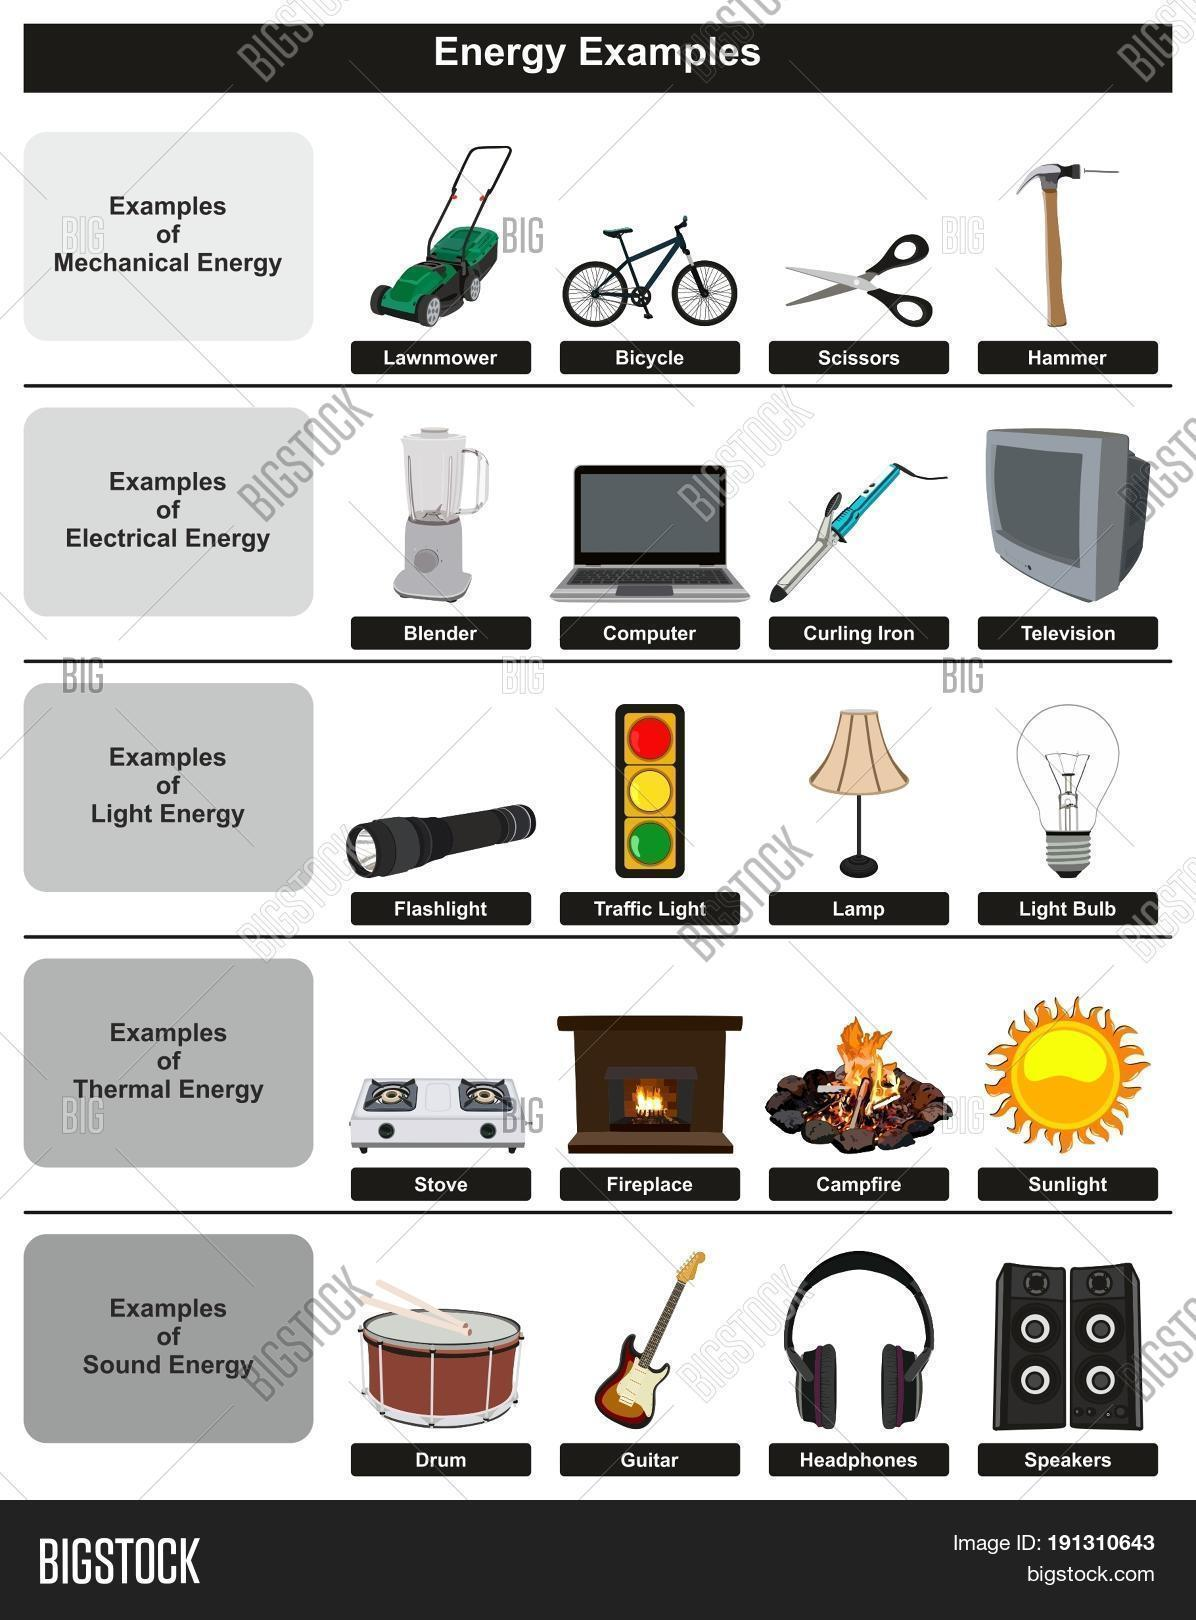 Energy Examples Infographic Diagram Image Amp Photo